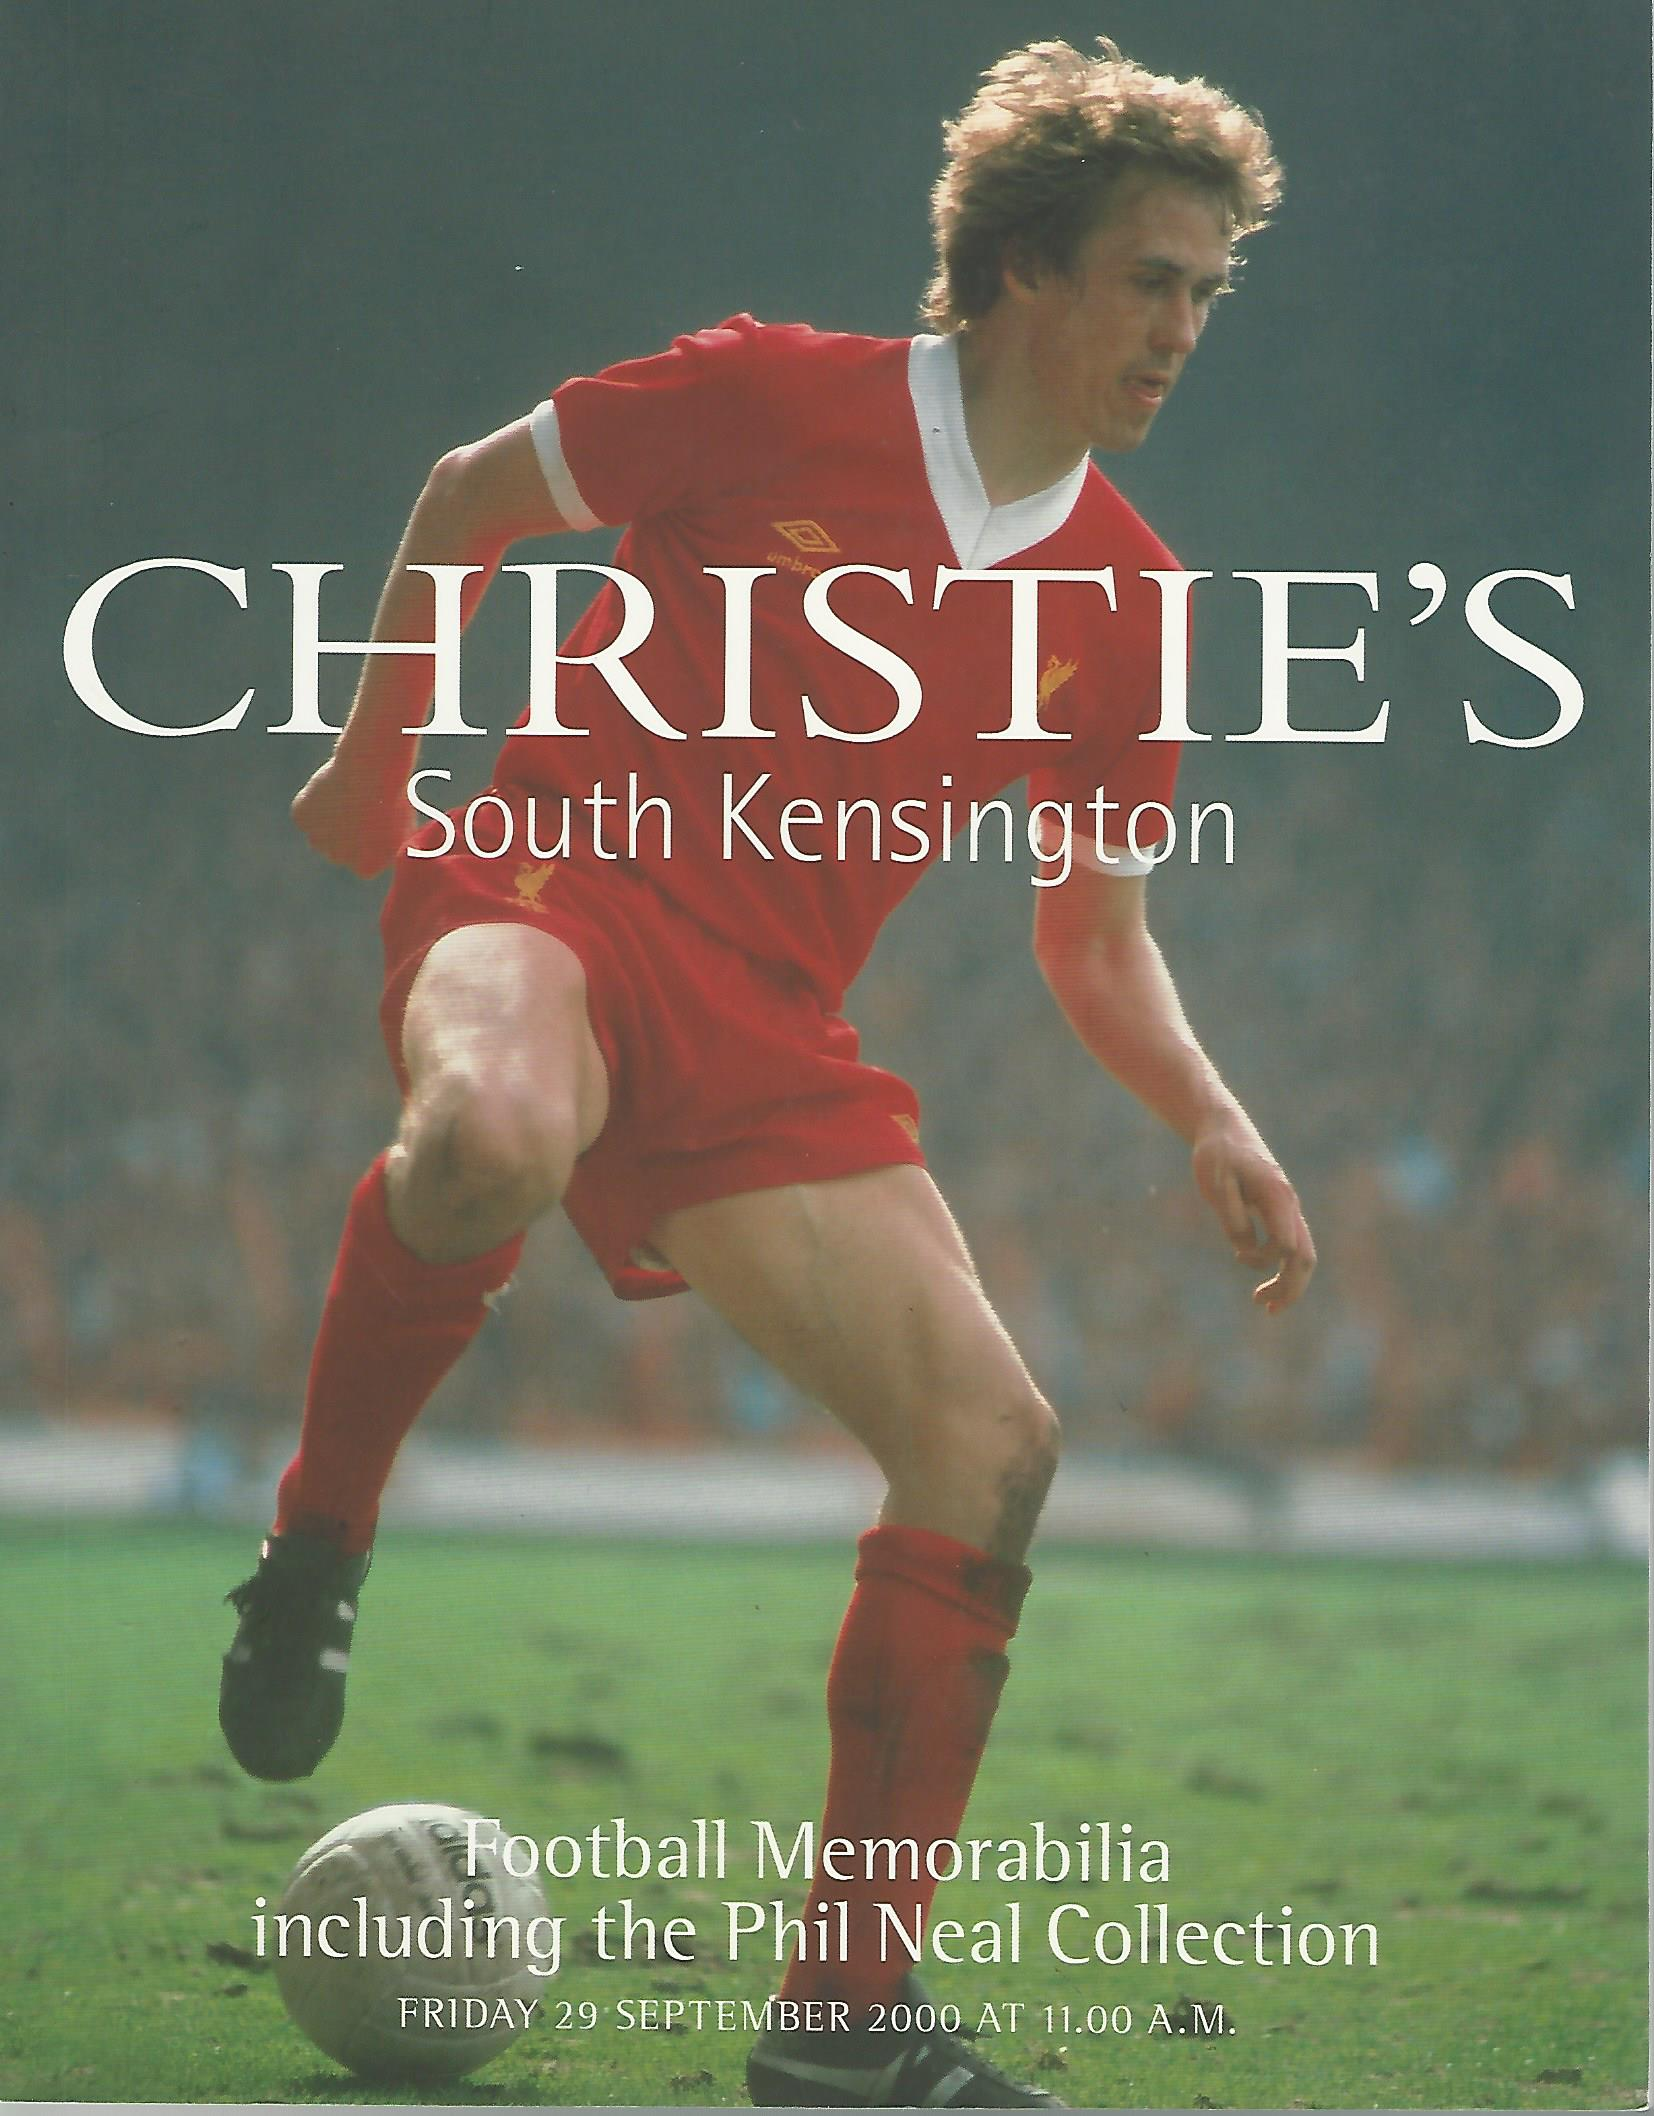 - Christie's South Kensington - Football Memorabilia - 29 september 2000 -Including the Phil Neal Collection